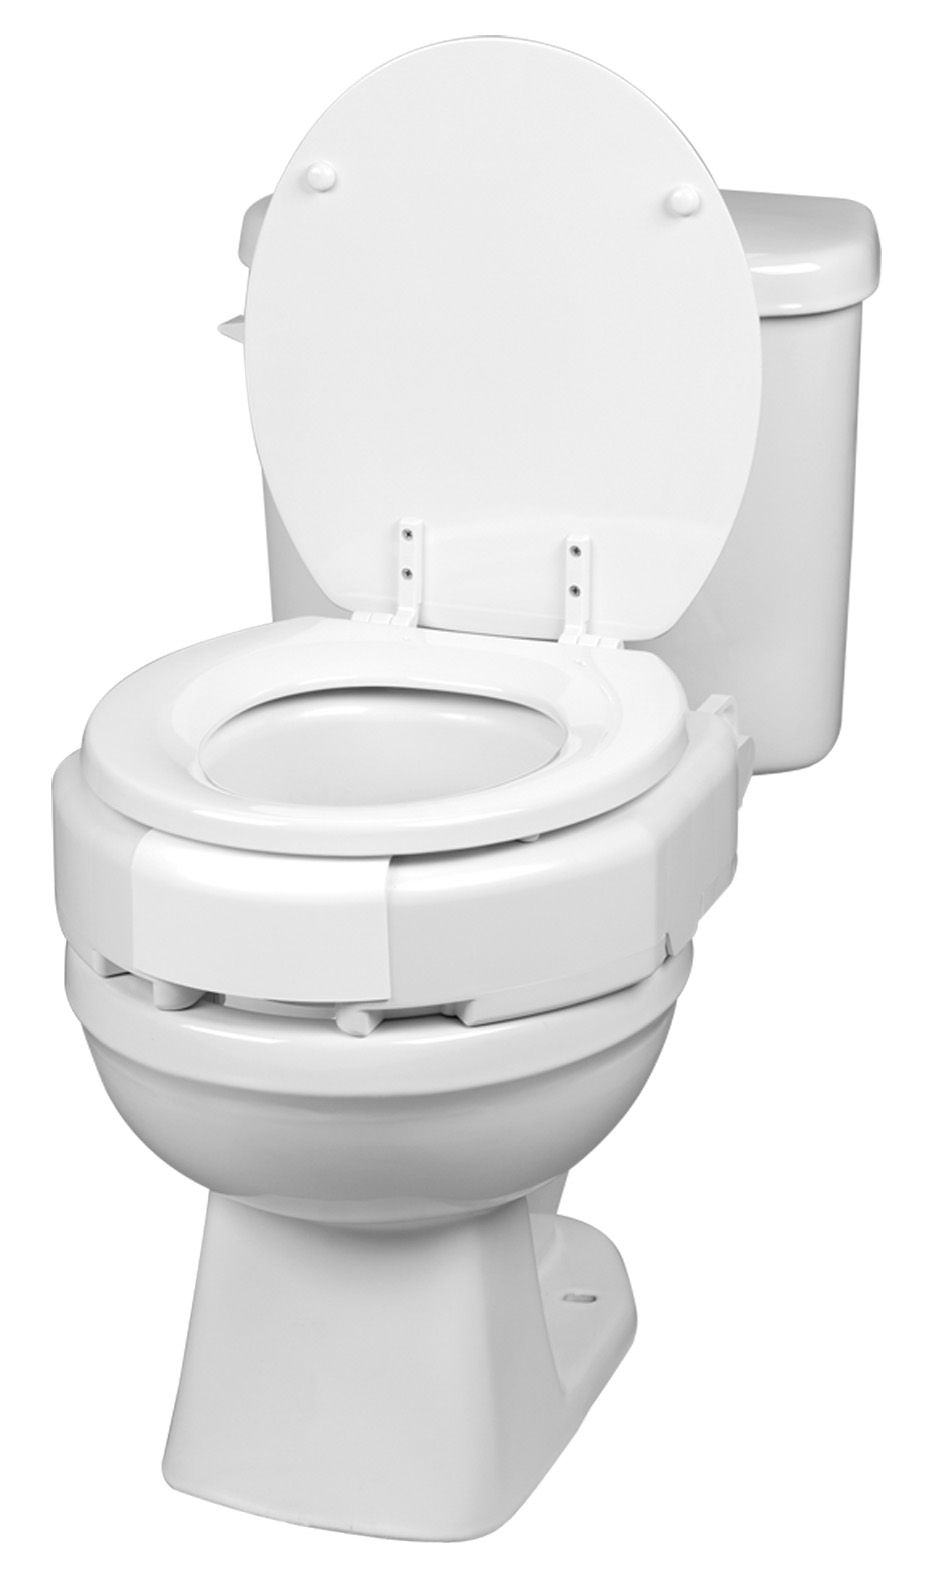 Ableware Secure Bolt Hinged Elevated Toilet Seat Elongated